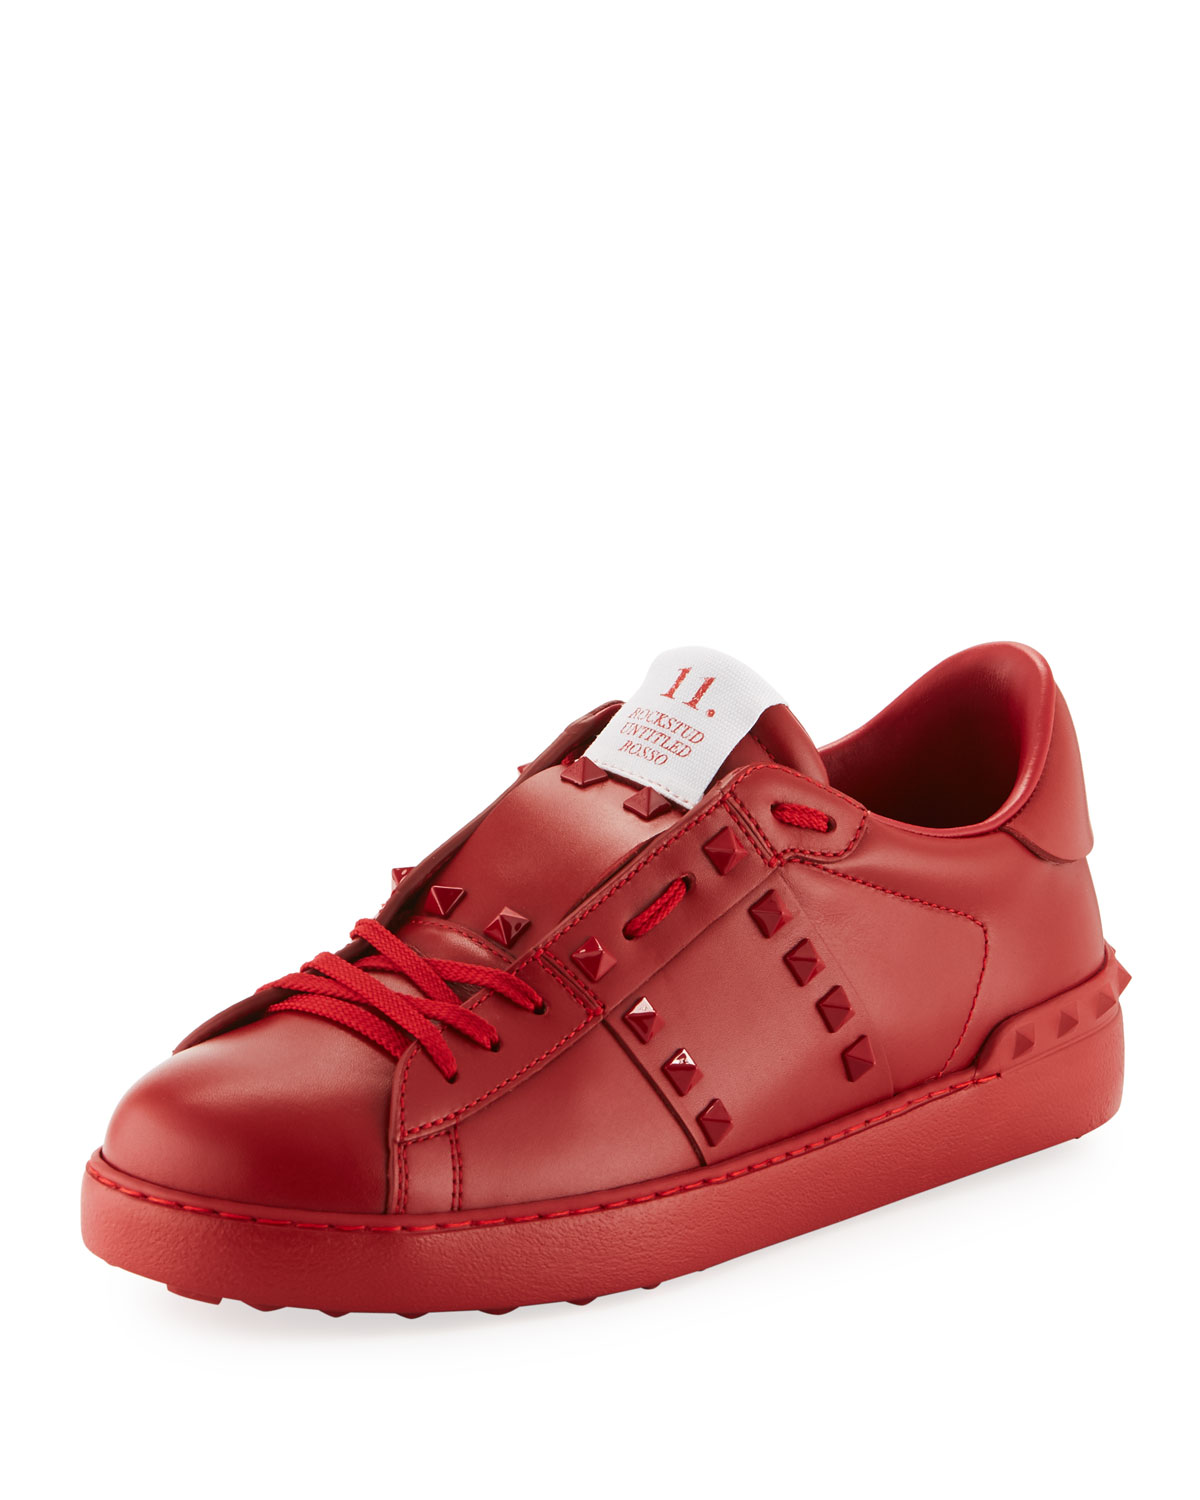 4011ecd5174b Valentino Garavani Rockstud Untitled Men s Leather Low-Top Sneakers ...